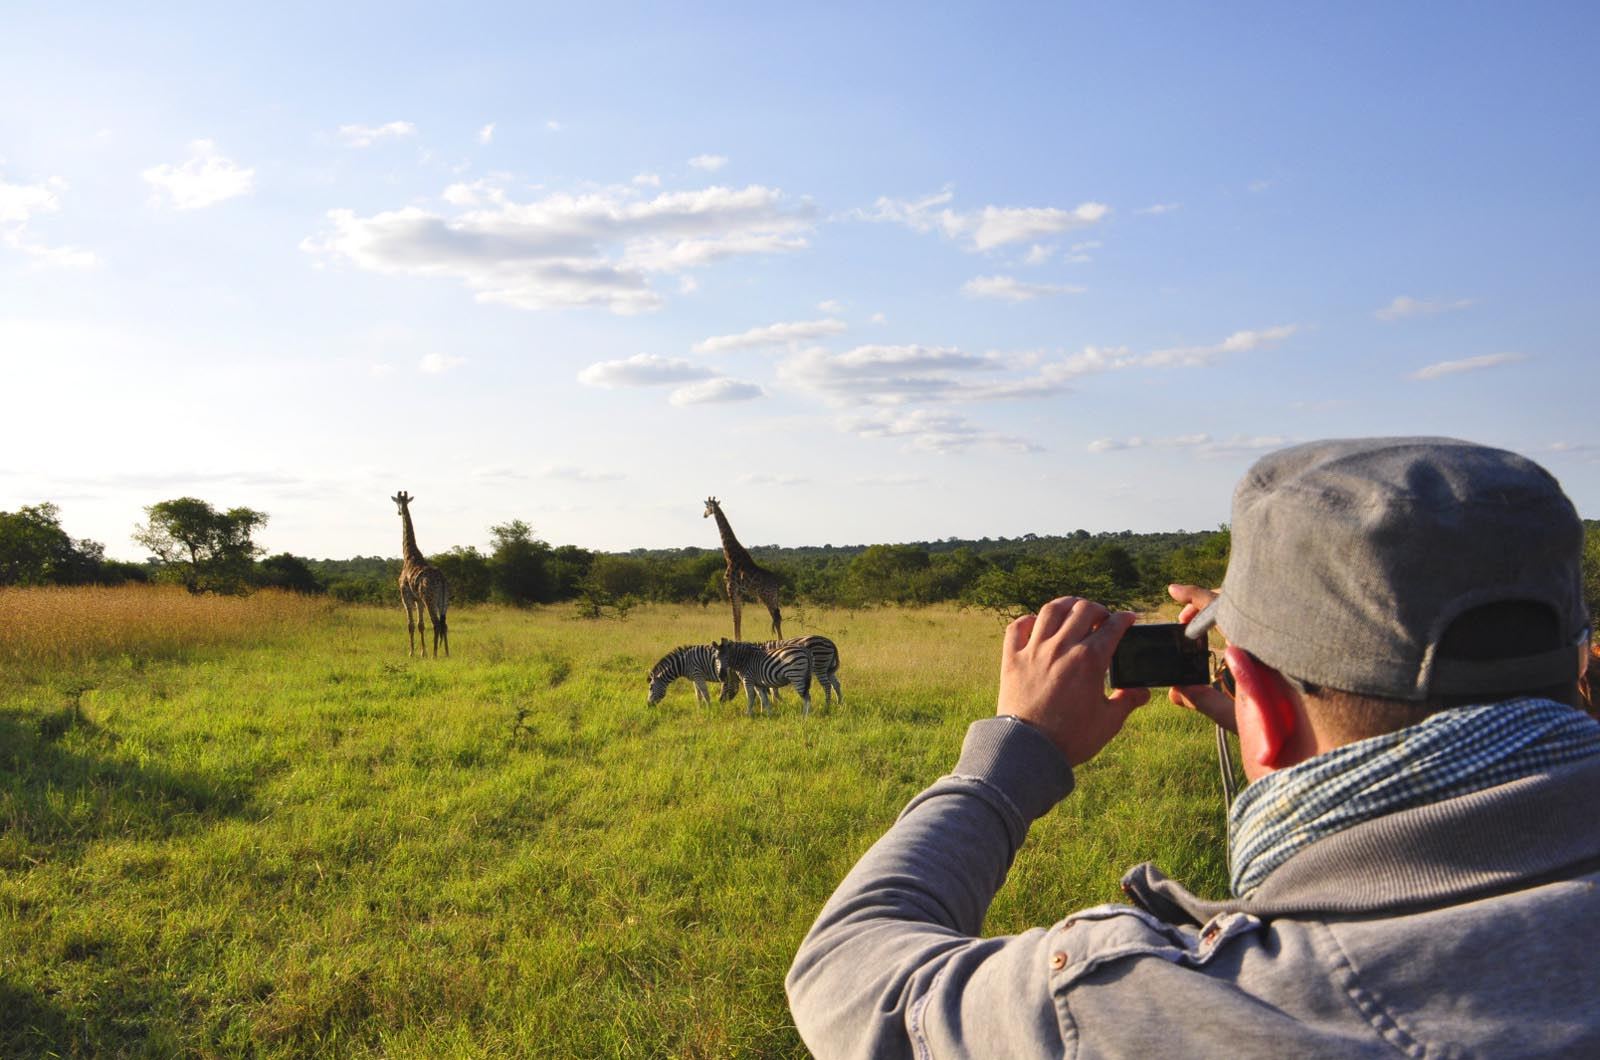 chikunto-lodge-zambia-in-style-safari-packages-lodges-luxury-tents-south-luangwa-location-game-giraffes